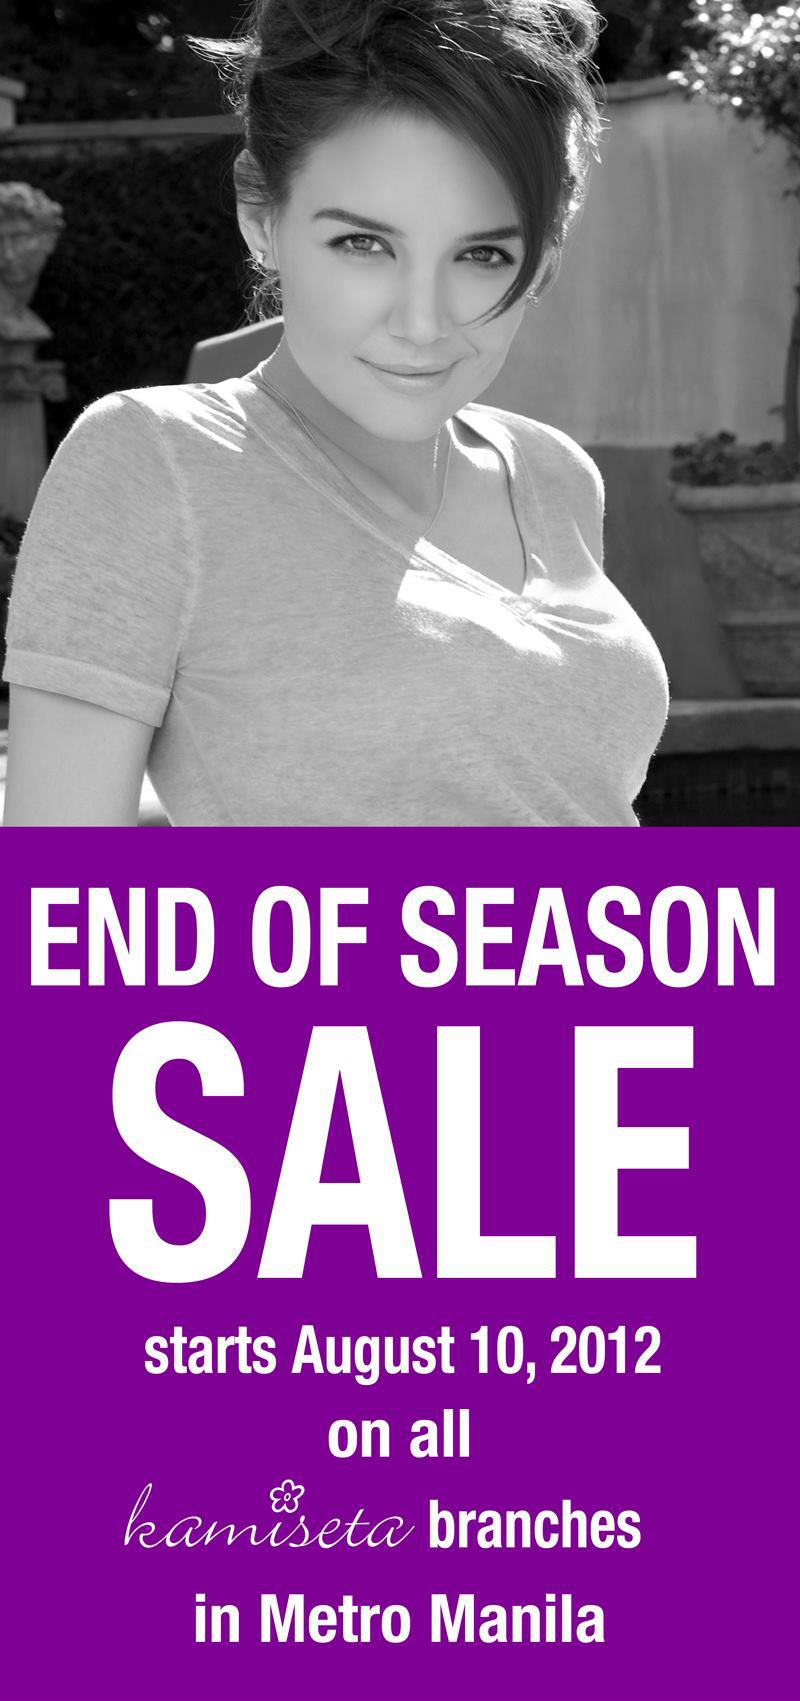 Kamiseta End of Season Sale August 2012